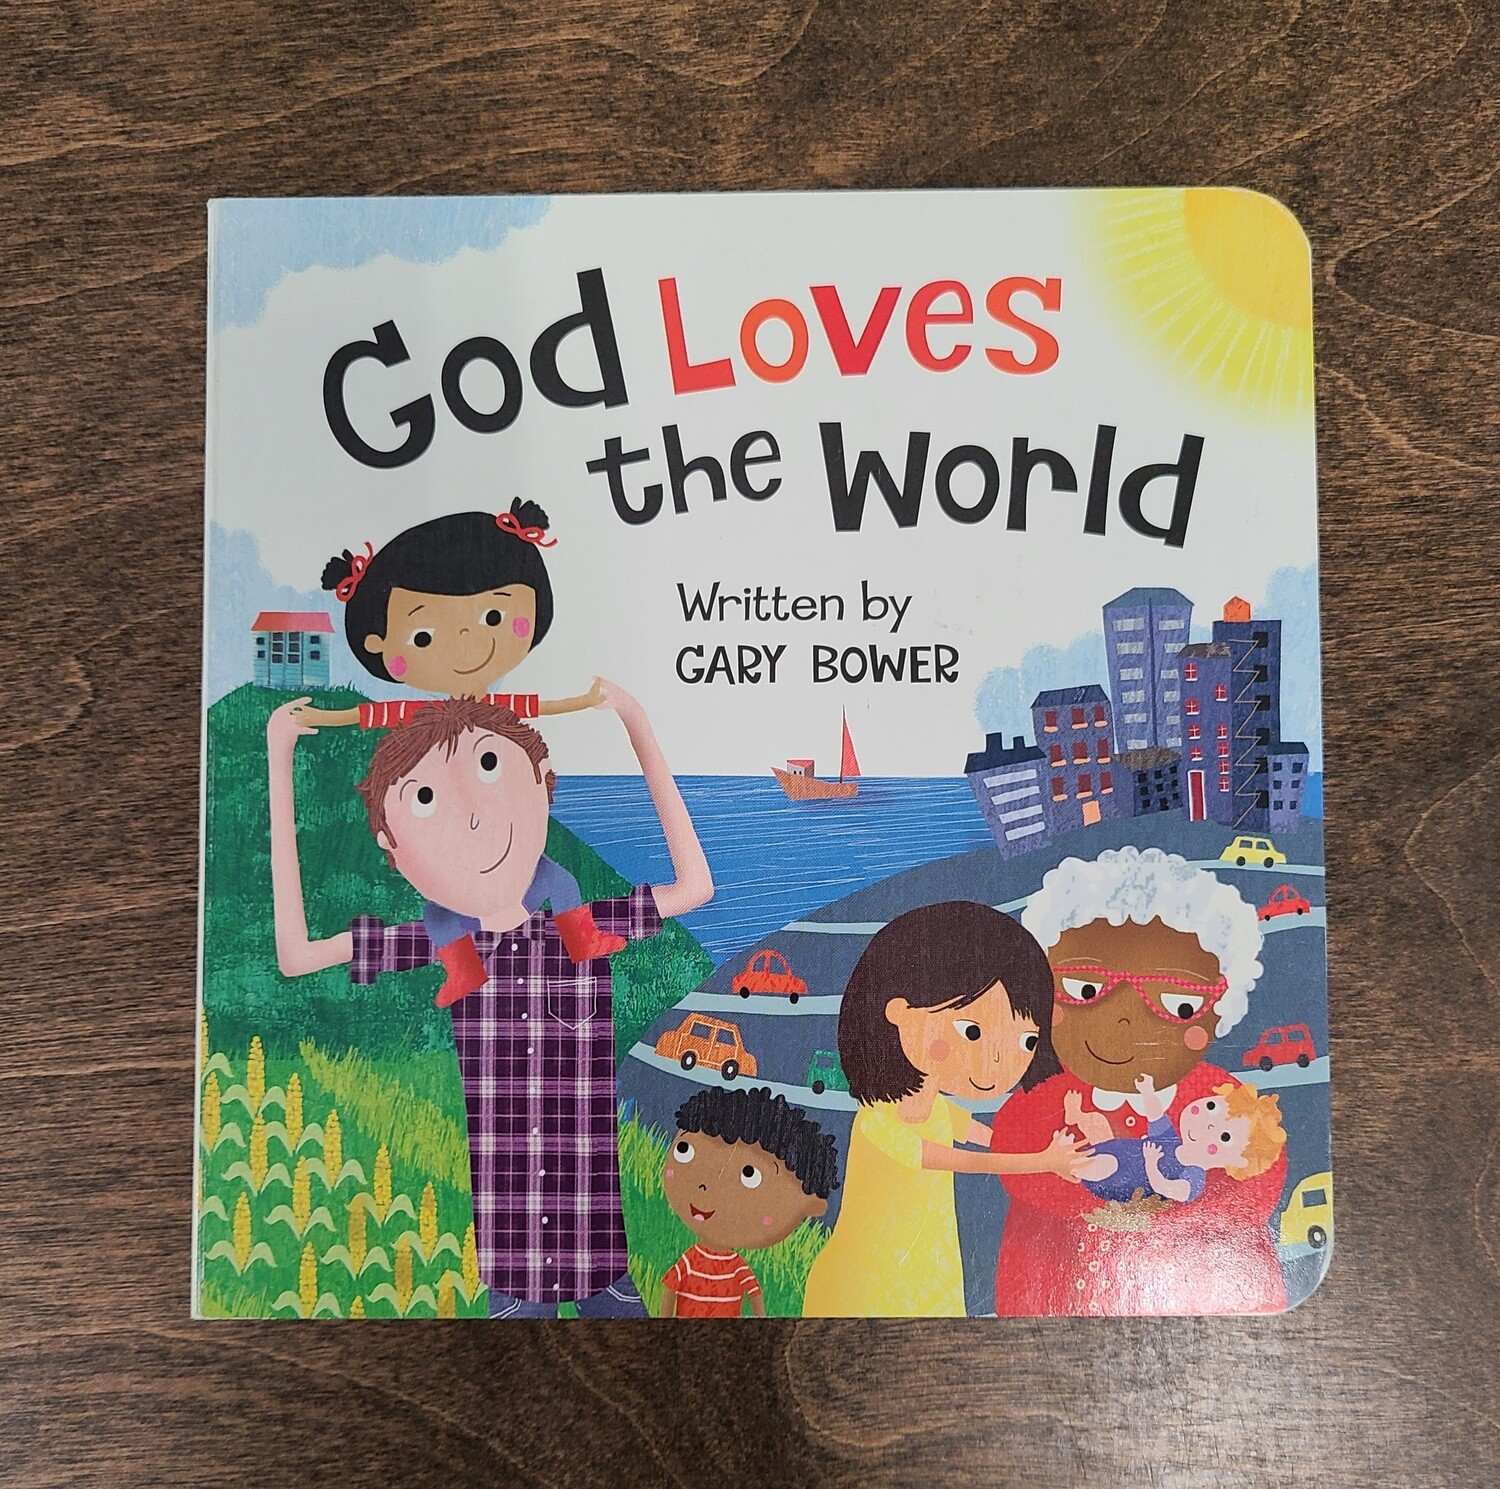 God Loves the World by Gary Bower